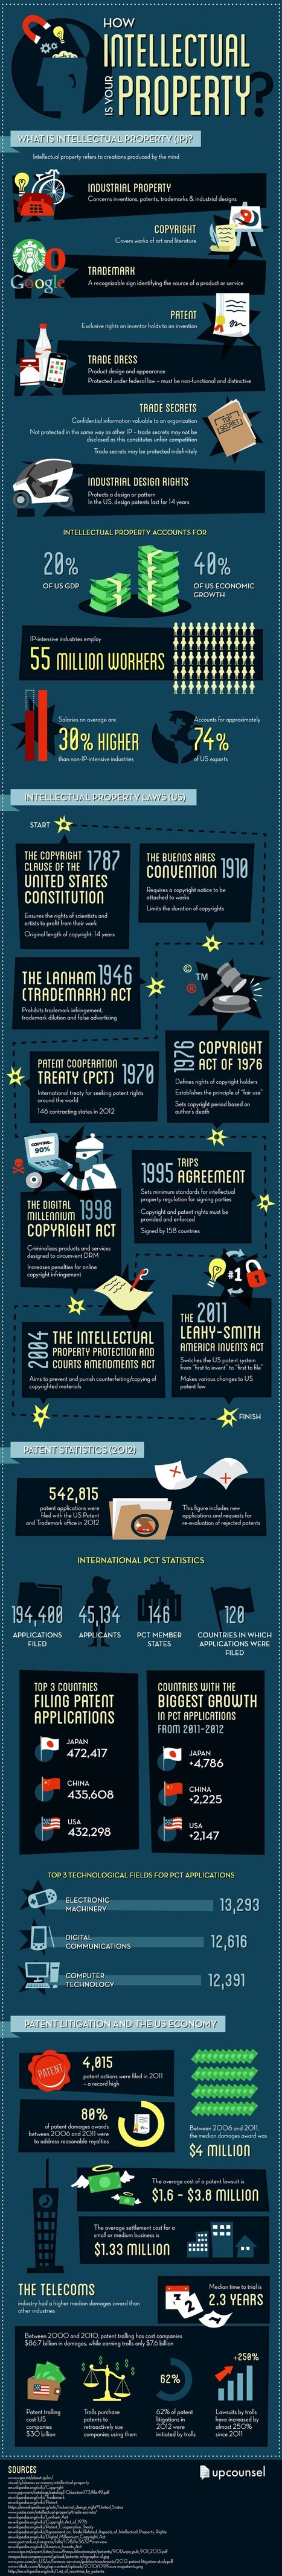 How Intellectual Is Your Property? #infographic | MarketingHits | Scoop.it